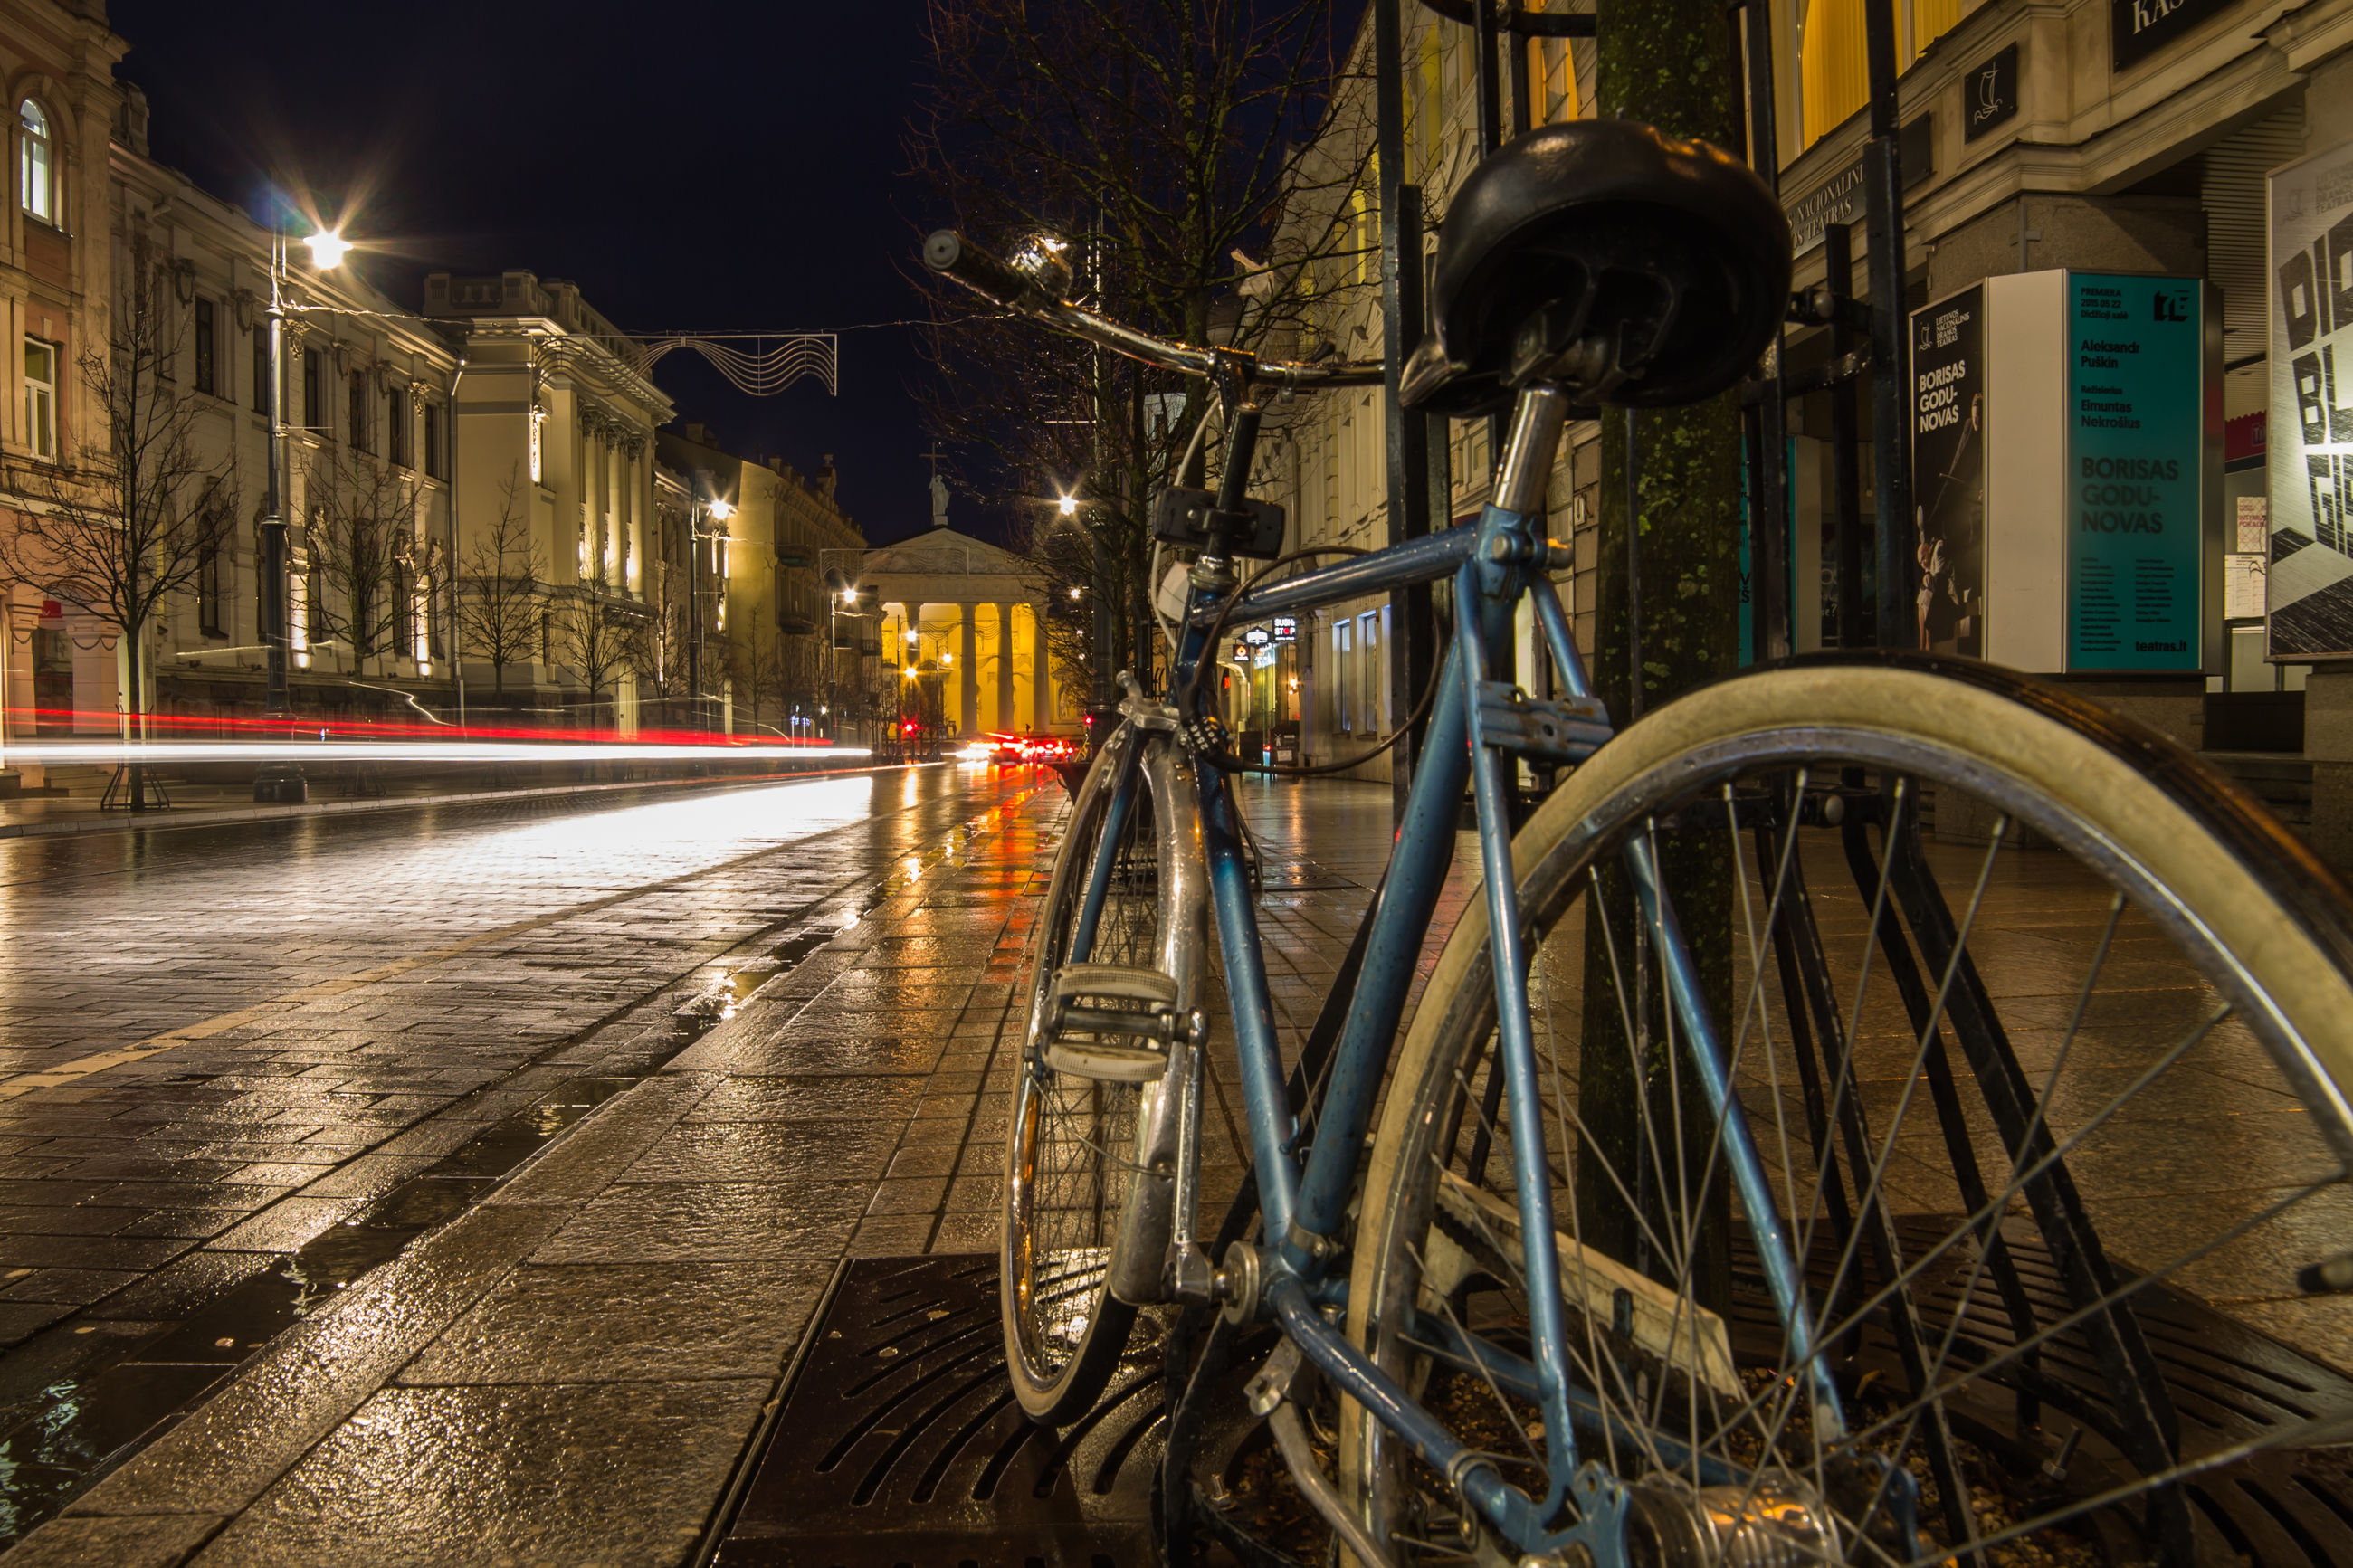 building exterior, architecture, built structure, night, city, illuminated, transportation, street, mode of transport, bicycle, land vehicle, building, city life, motion, water, street light, incidental people, residential building